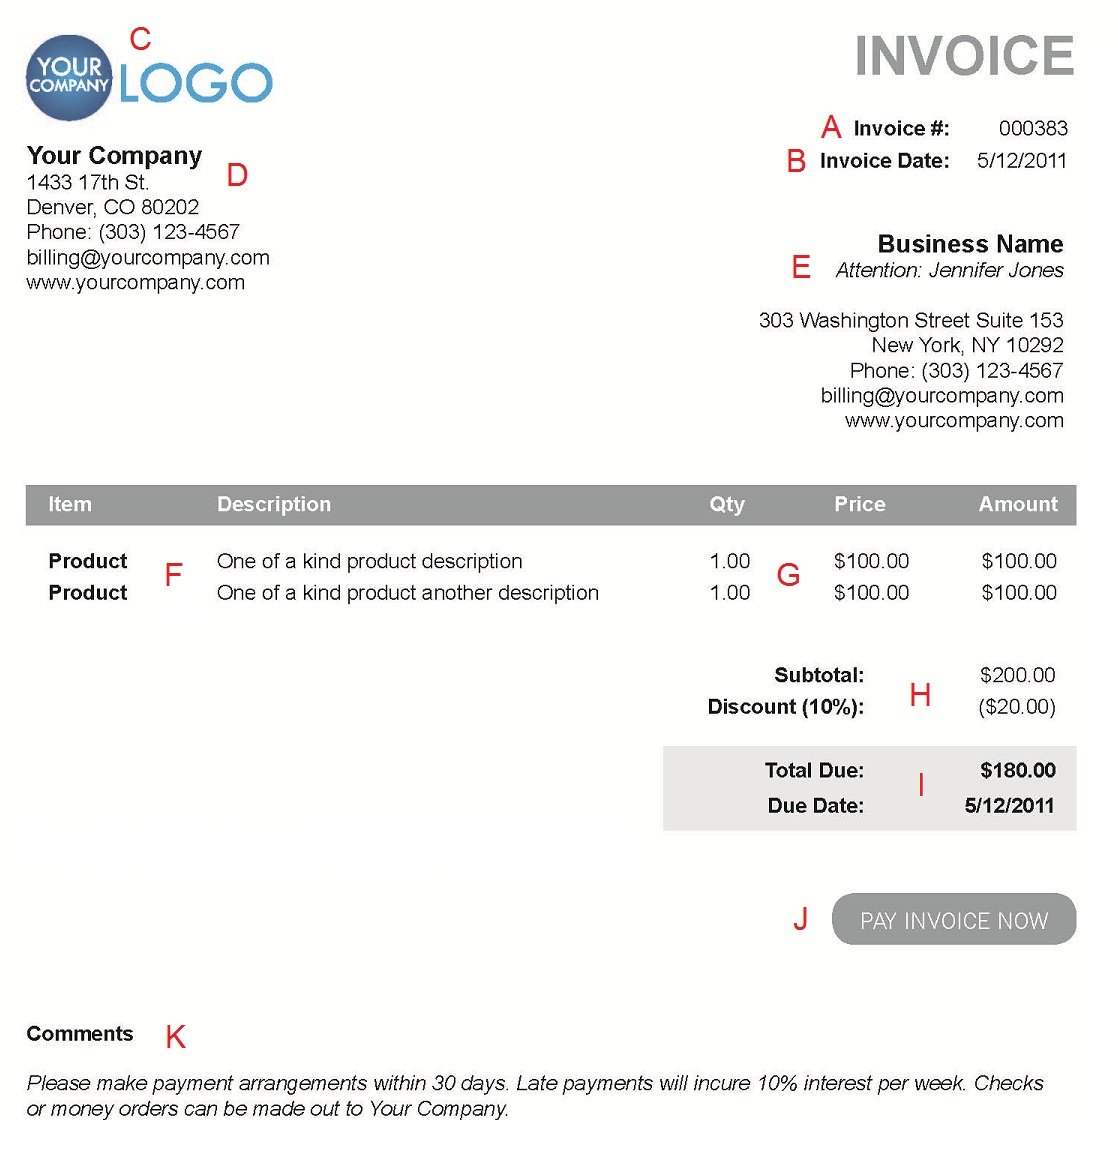 Atvingus  Gorgeous The  Different Sections Of An Electronic Payment Invoice With Excellent A  With Awesome Proforma Invoice Definition Also Invoice Books In Addition Invoice Funding And How To Make An Invoice In Word As Well As Create Invoice Template Additionally Creating Invoices From Paysimplecom With Atvingus  Excellent The  Different Sections Of An Electronic Payment Invoice With Awesome A  And Gorgeous Proforma Invoice Definition Also Invoice Books In Addition Invoice Funding From Paysimplecom